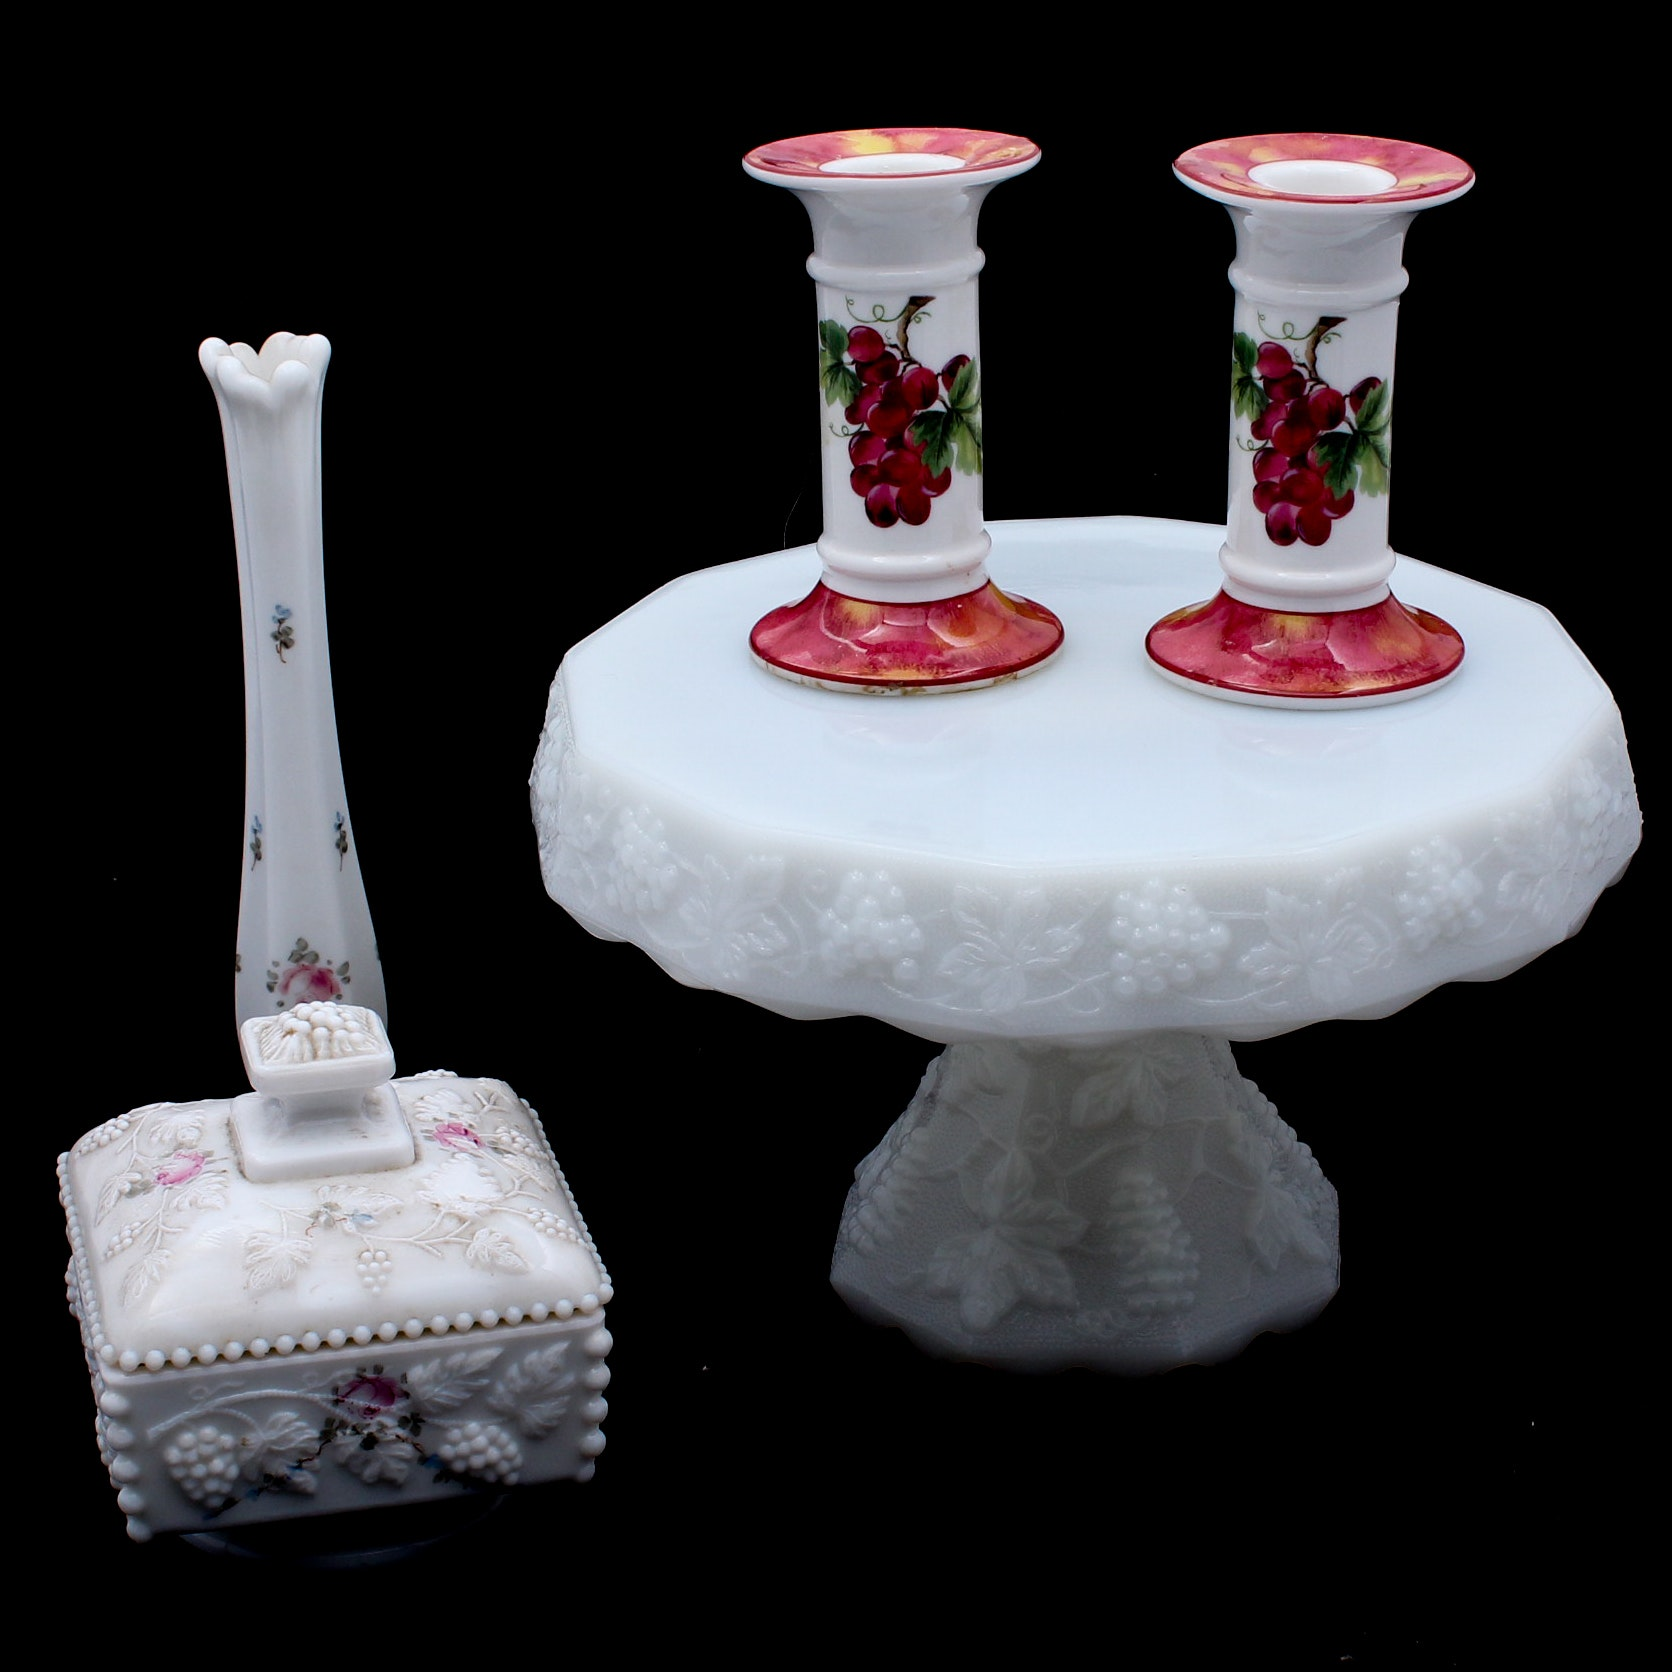 Milk Glass with Grape Motif Featuring Royal Doulton and Westmoreland